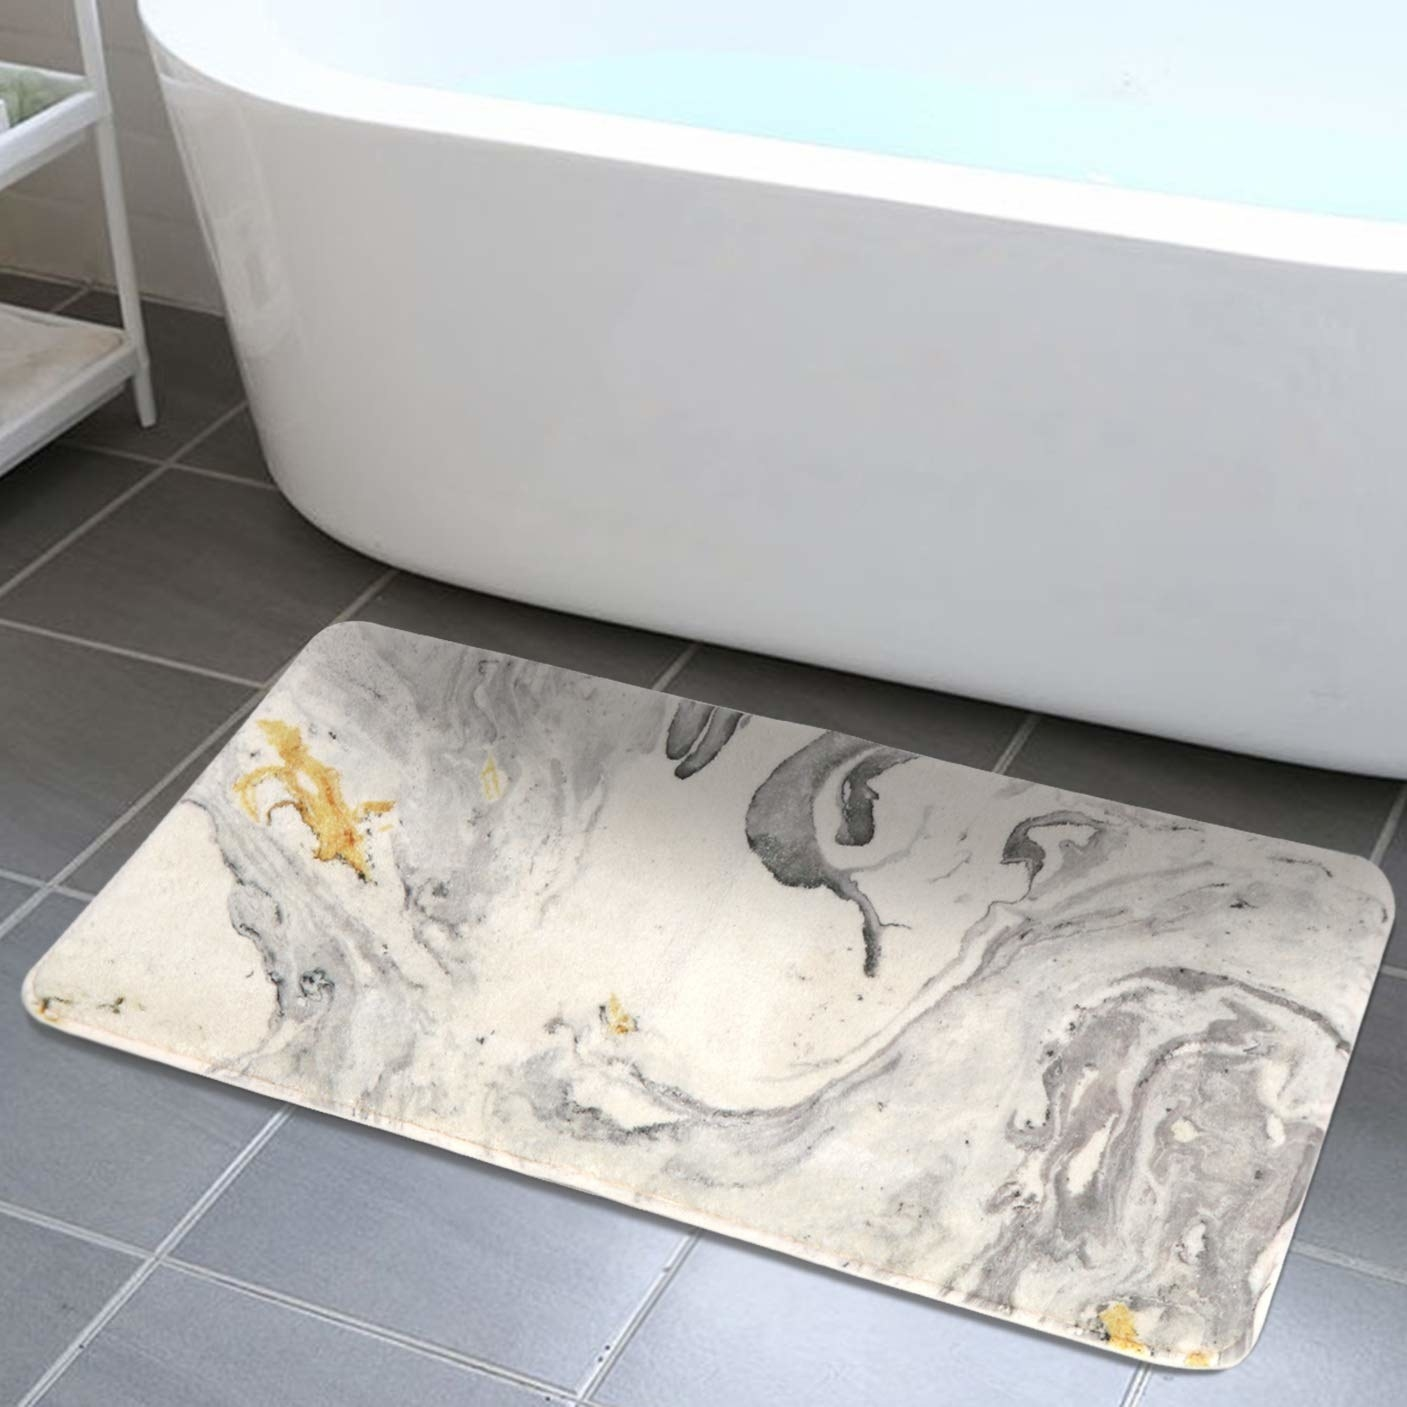 23 Of The Best Bath Mats You Can Get On Amazon